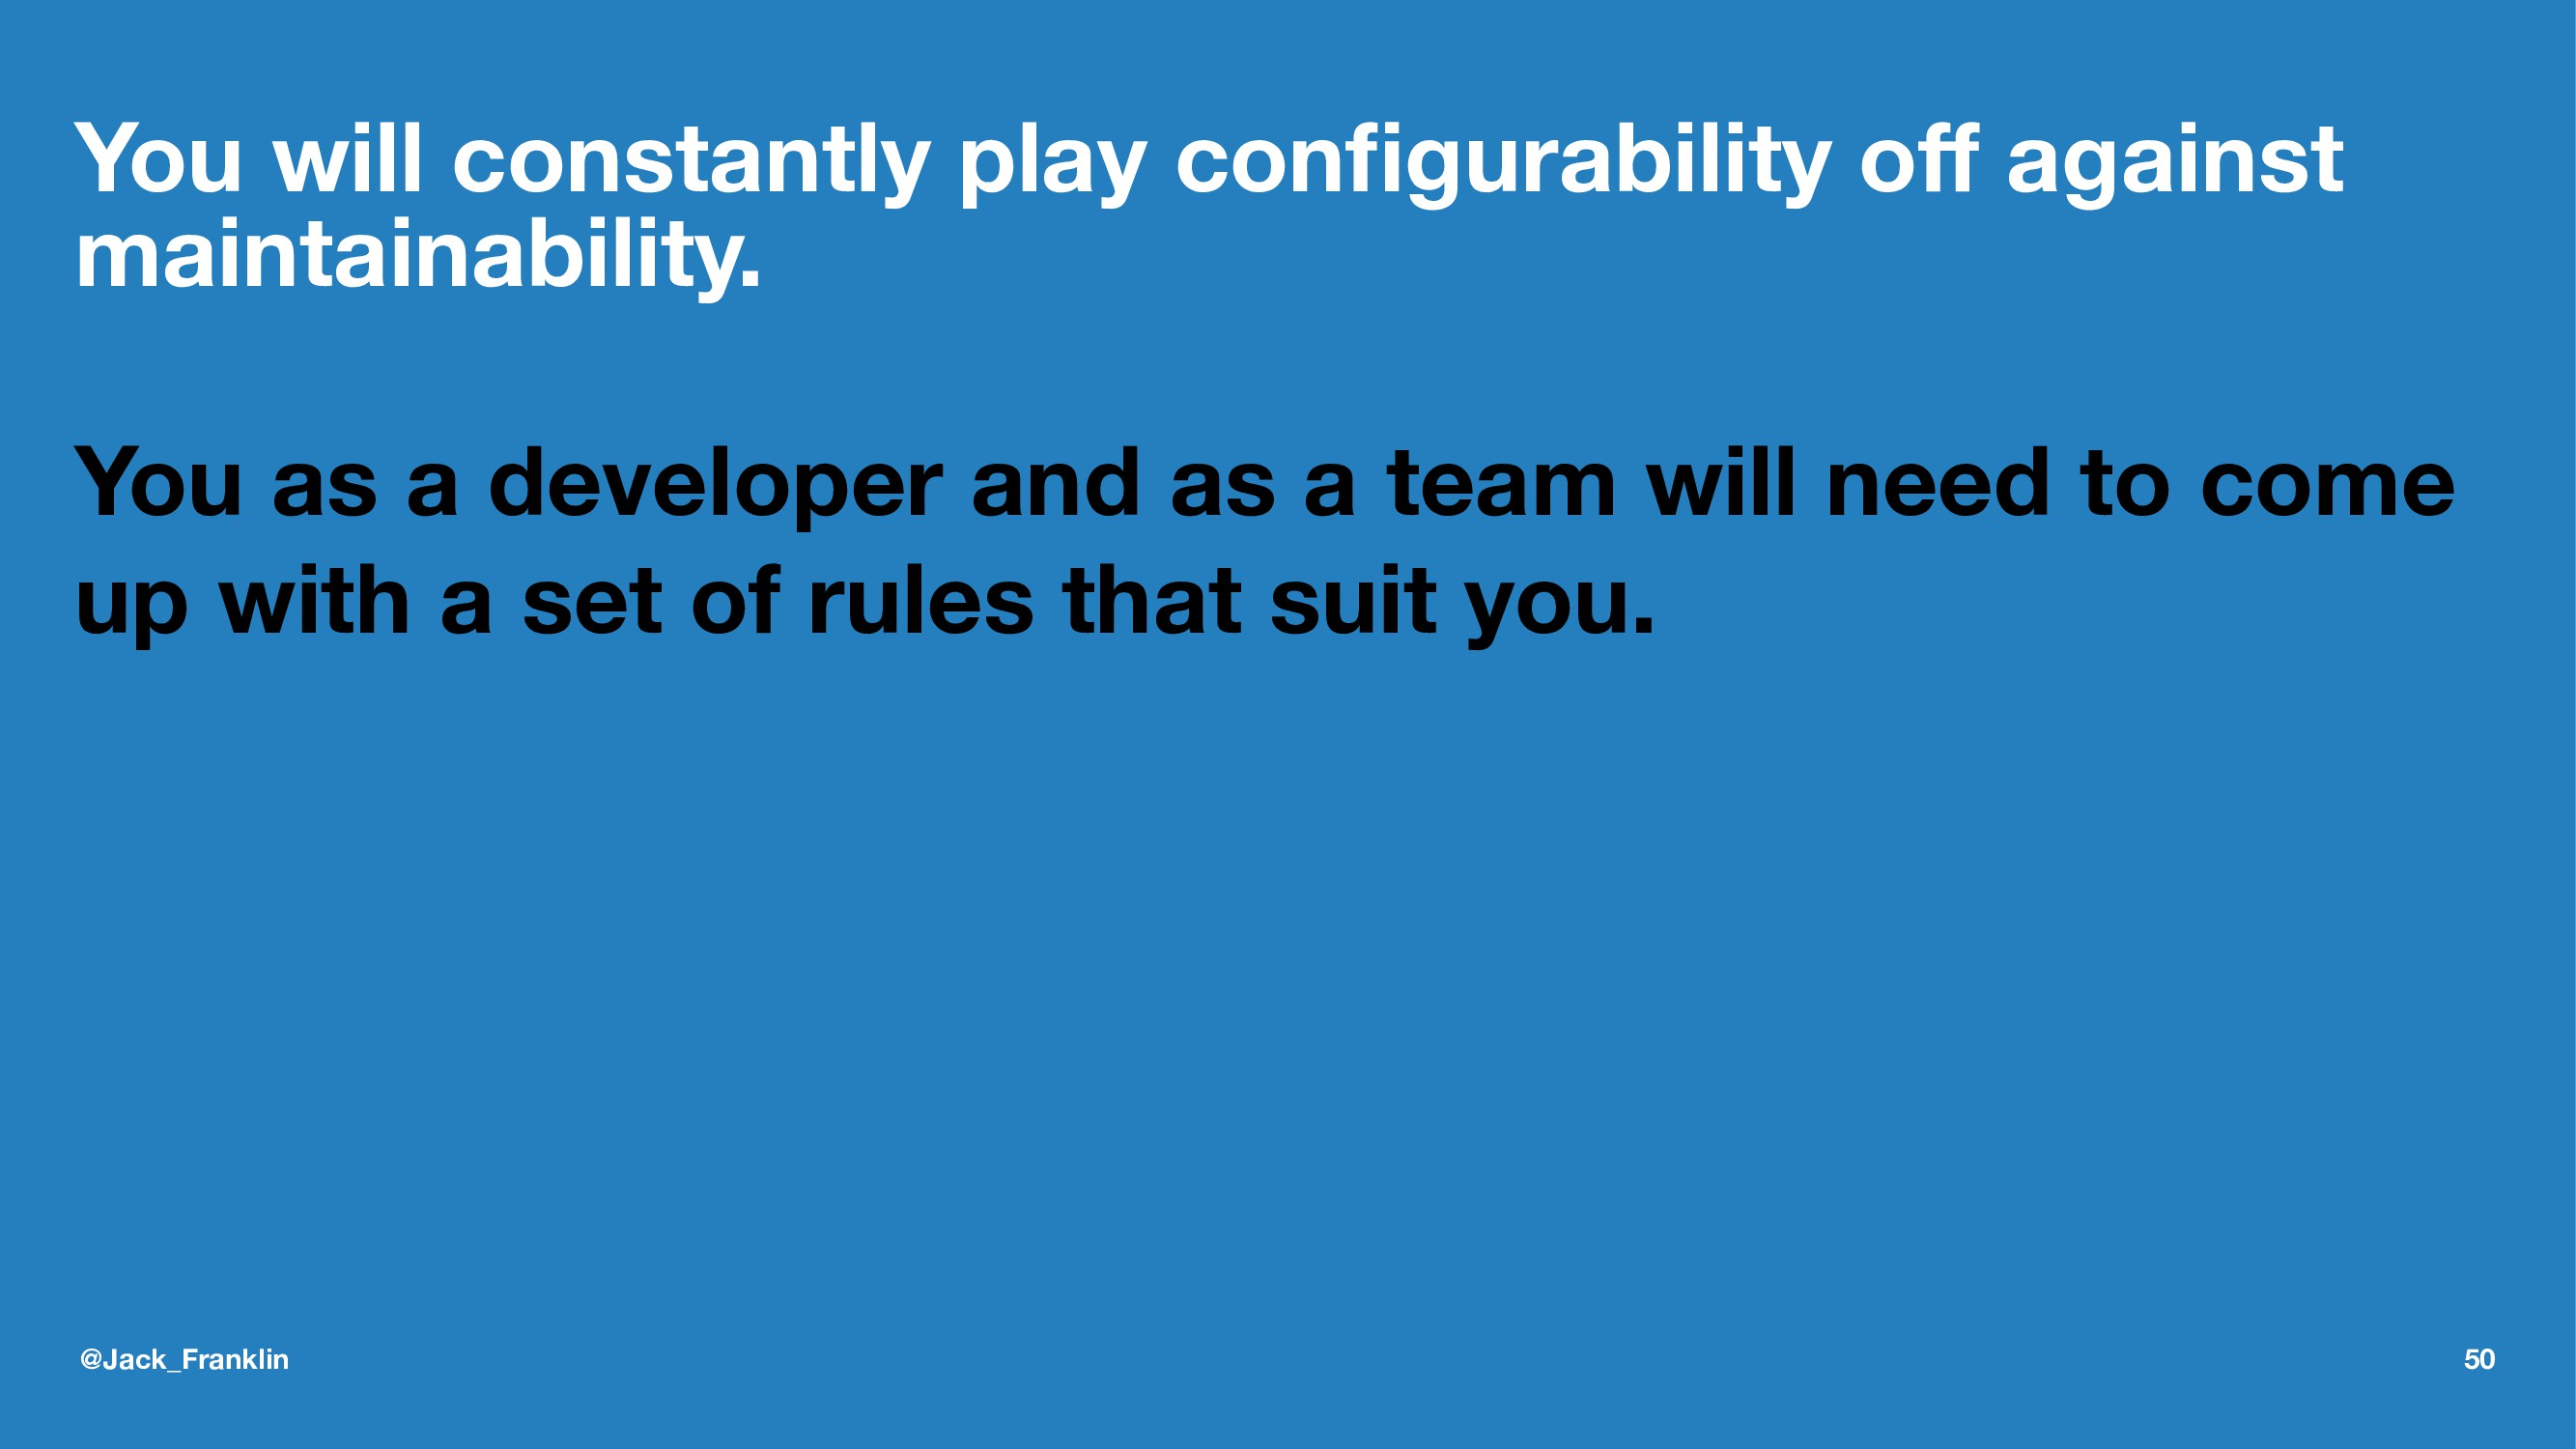 You will constantly play configurability off agai...